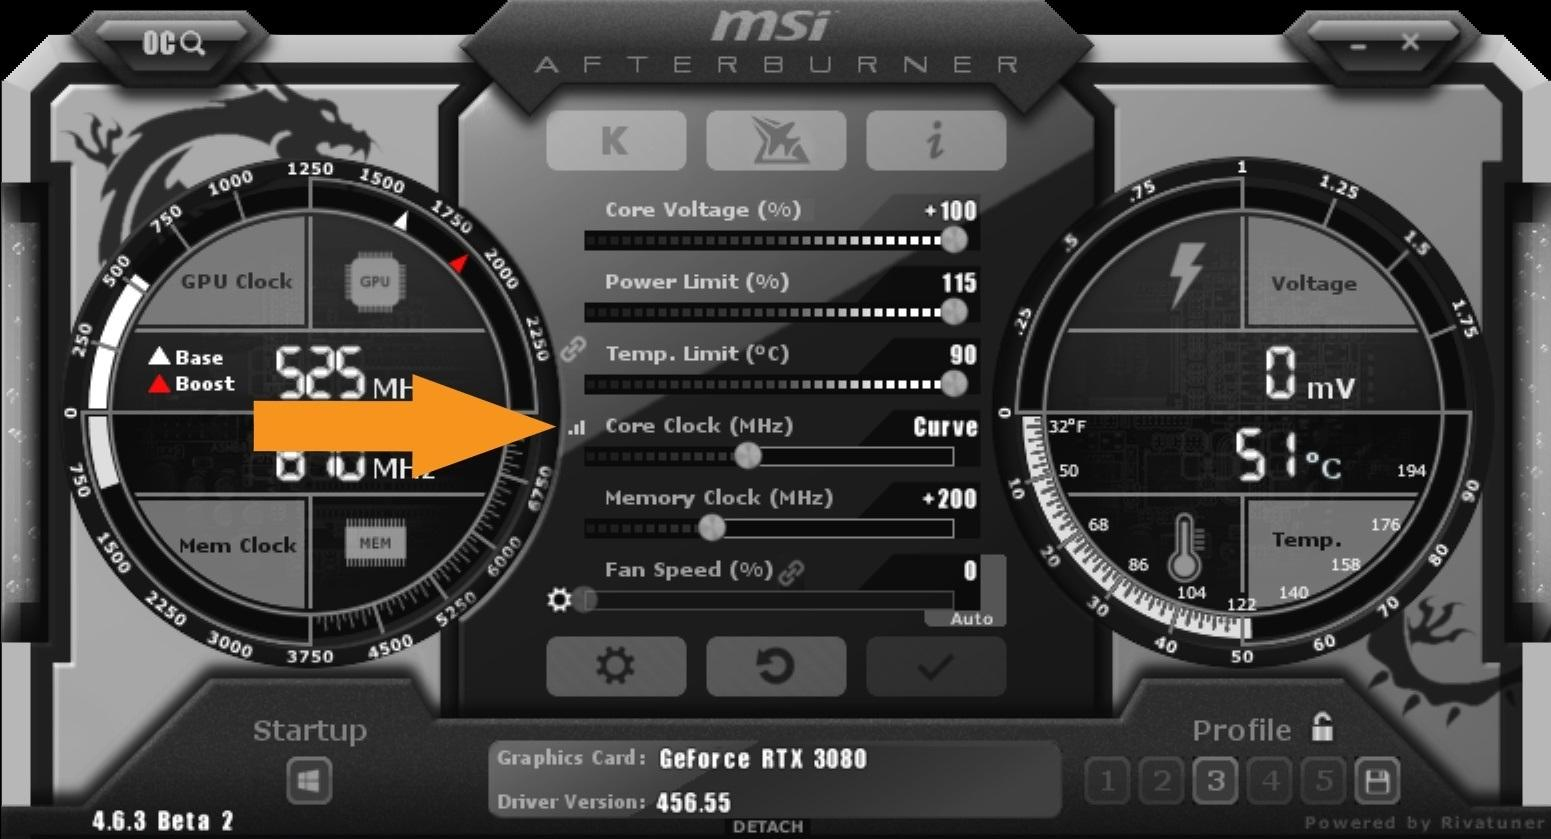 Nvidia Geforce Rtx 3080 Guide Overclocking Msi After Burner Core Clock